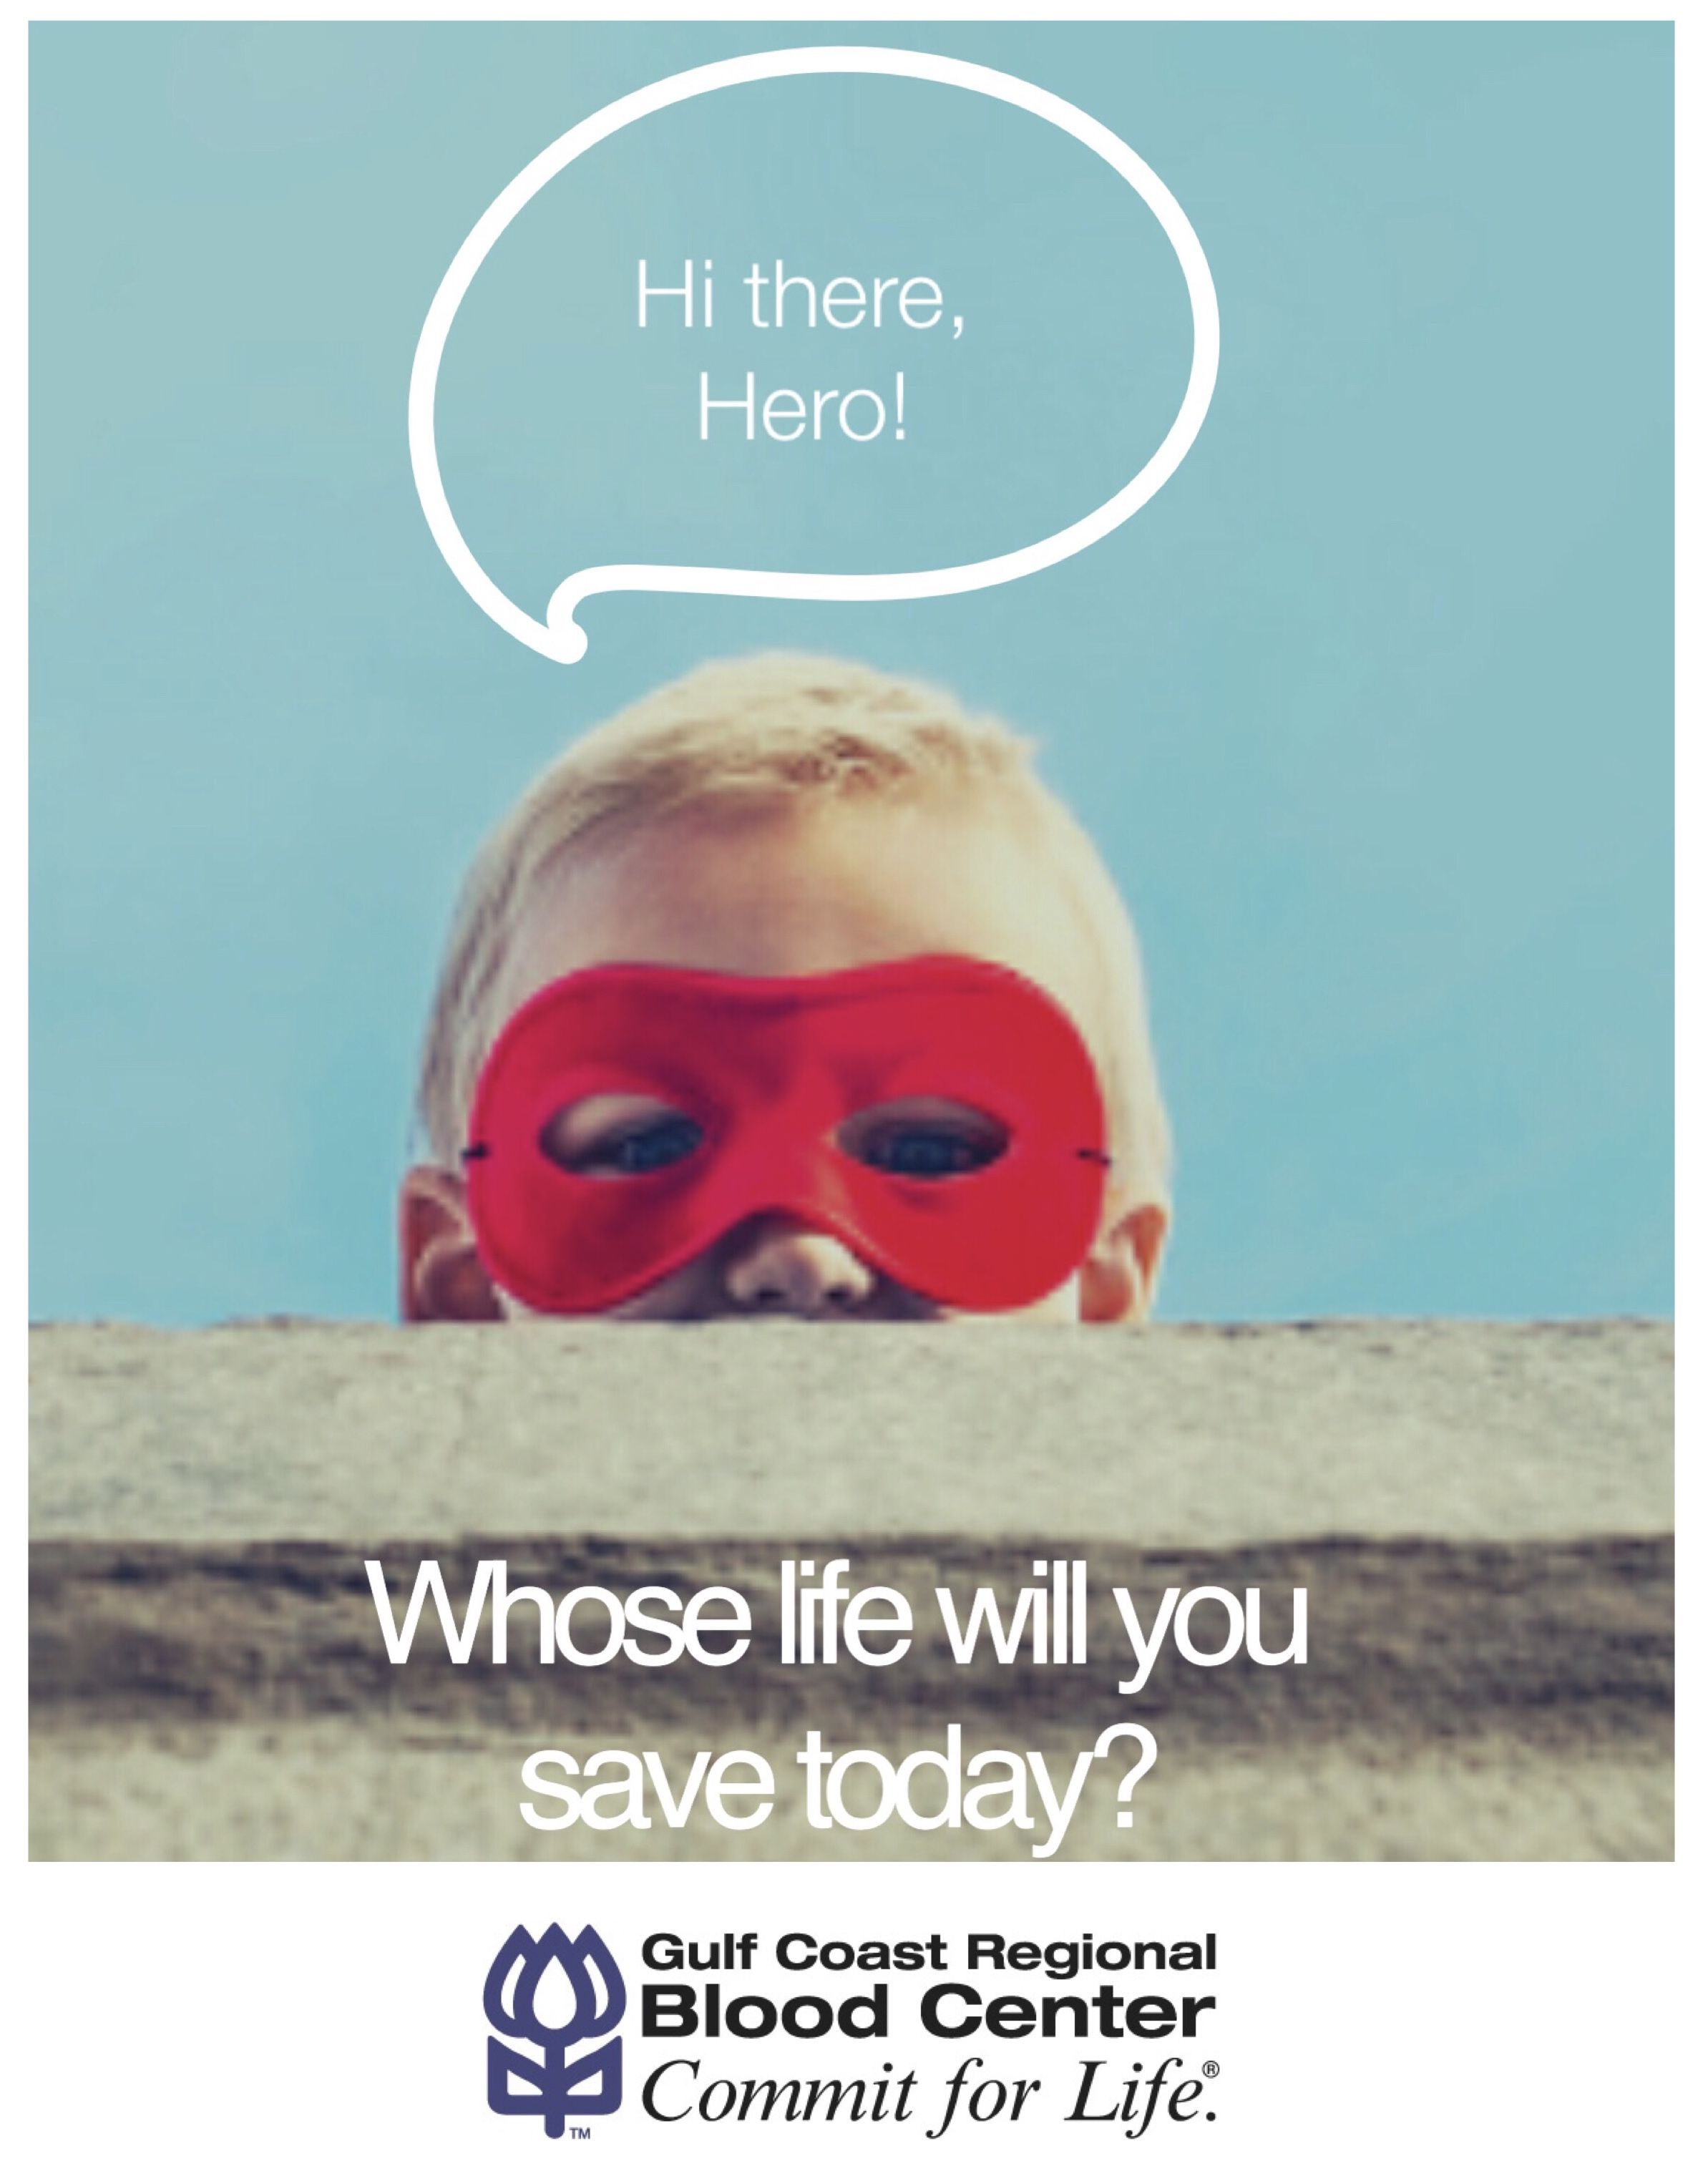 39d6884f7 Did you know that one donation of blood can save up to three lives? Donating  blood is the opportunity for every HERO to make a difference.